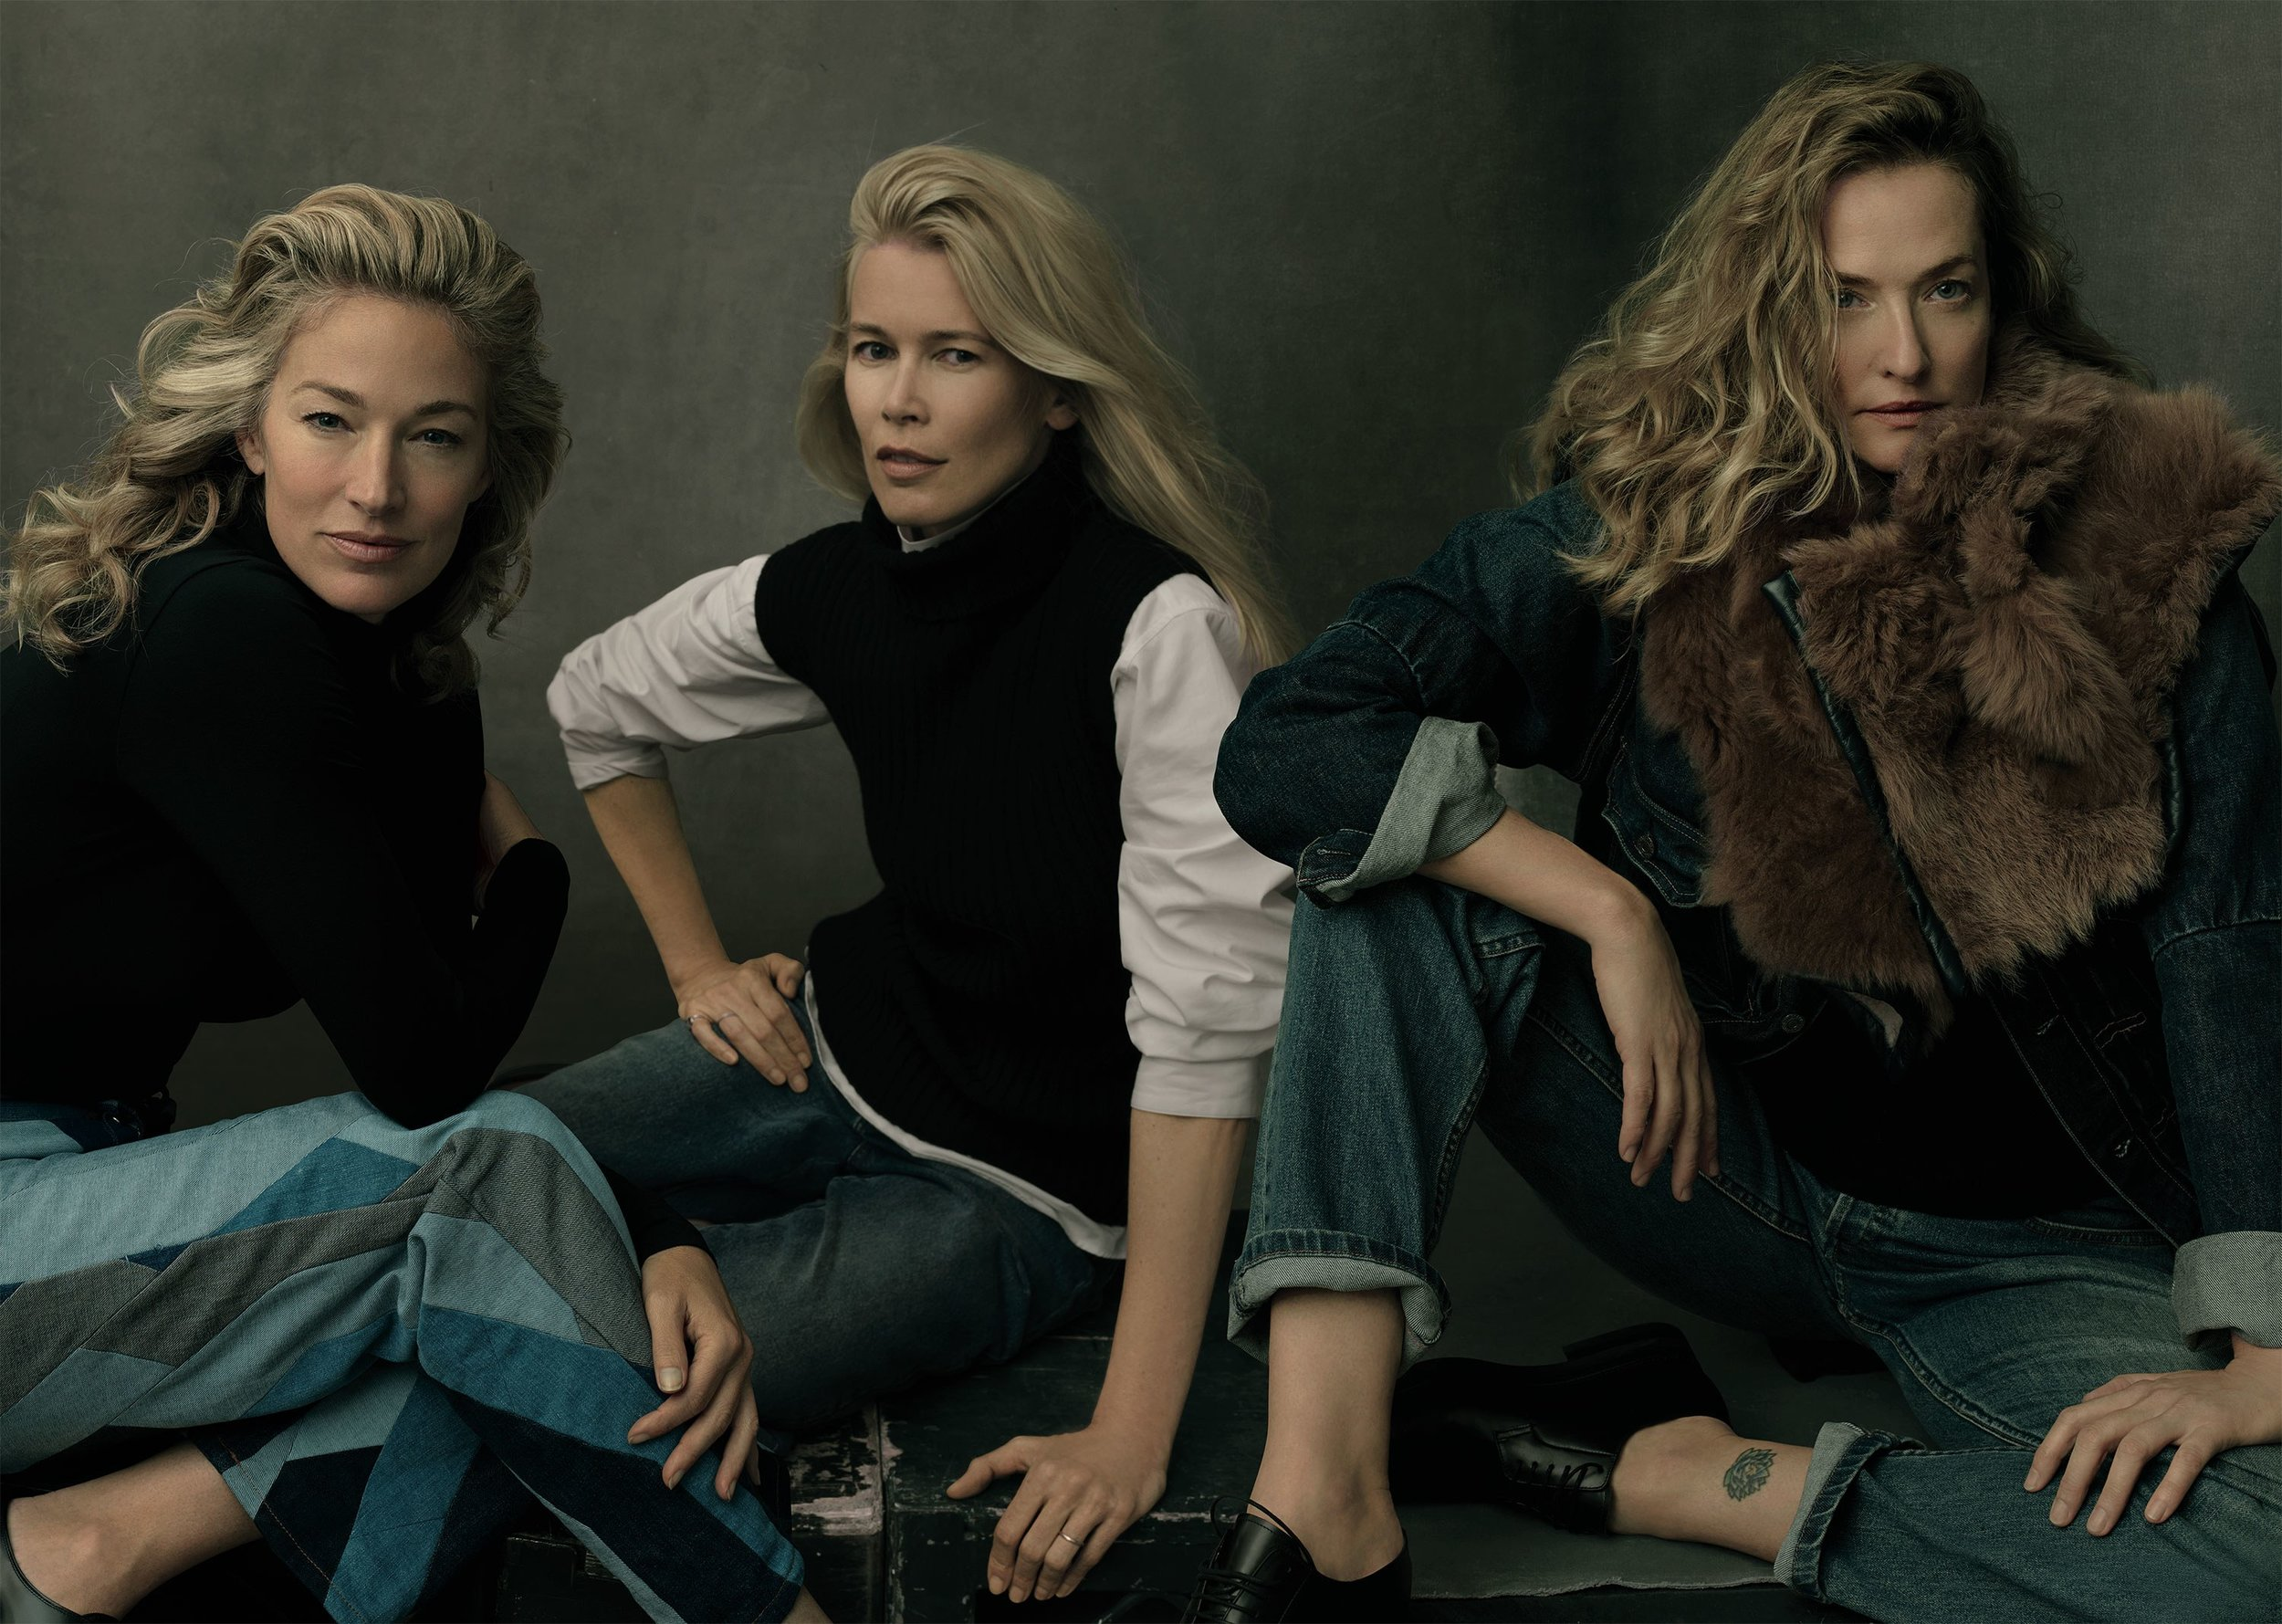 02-supermodels-denim-vogue-september-2017.jpg